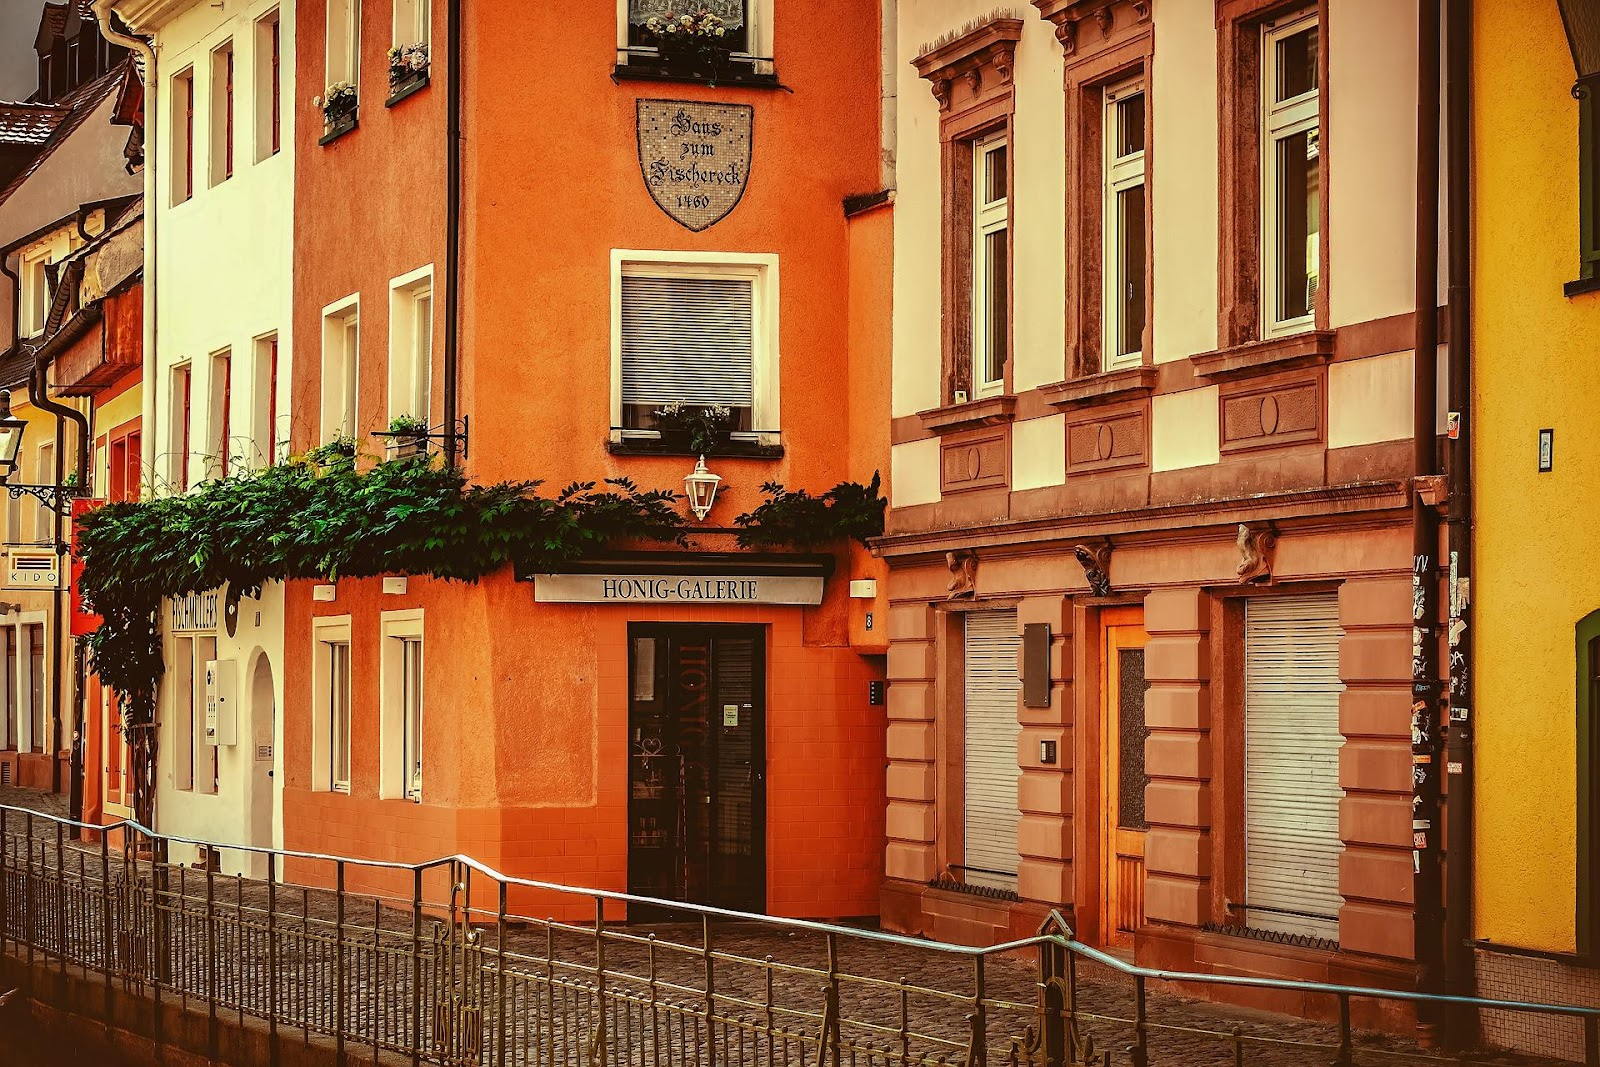 red white and orange traditional medieval buildings in freiburg germany